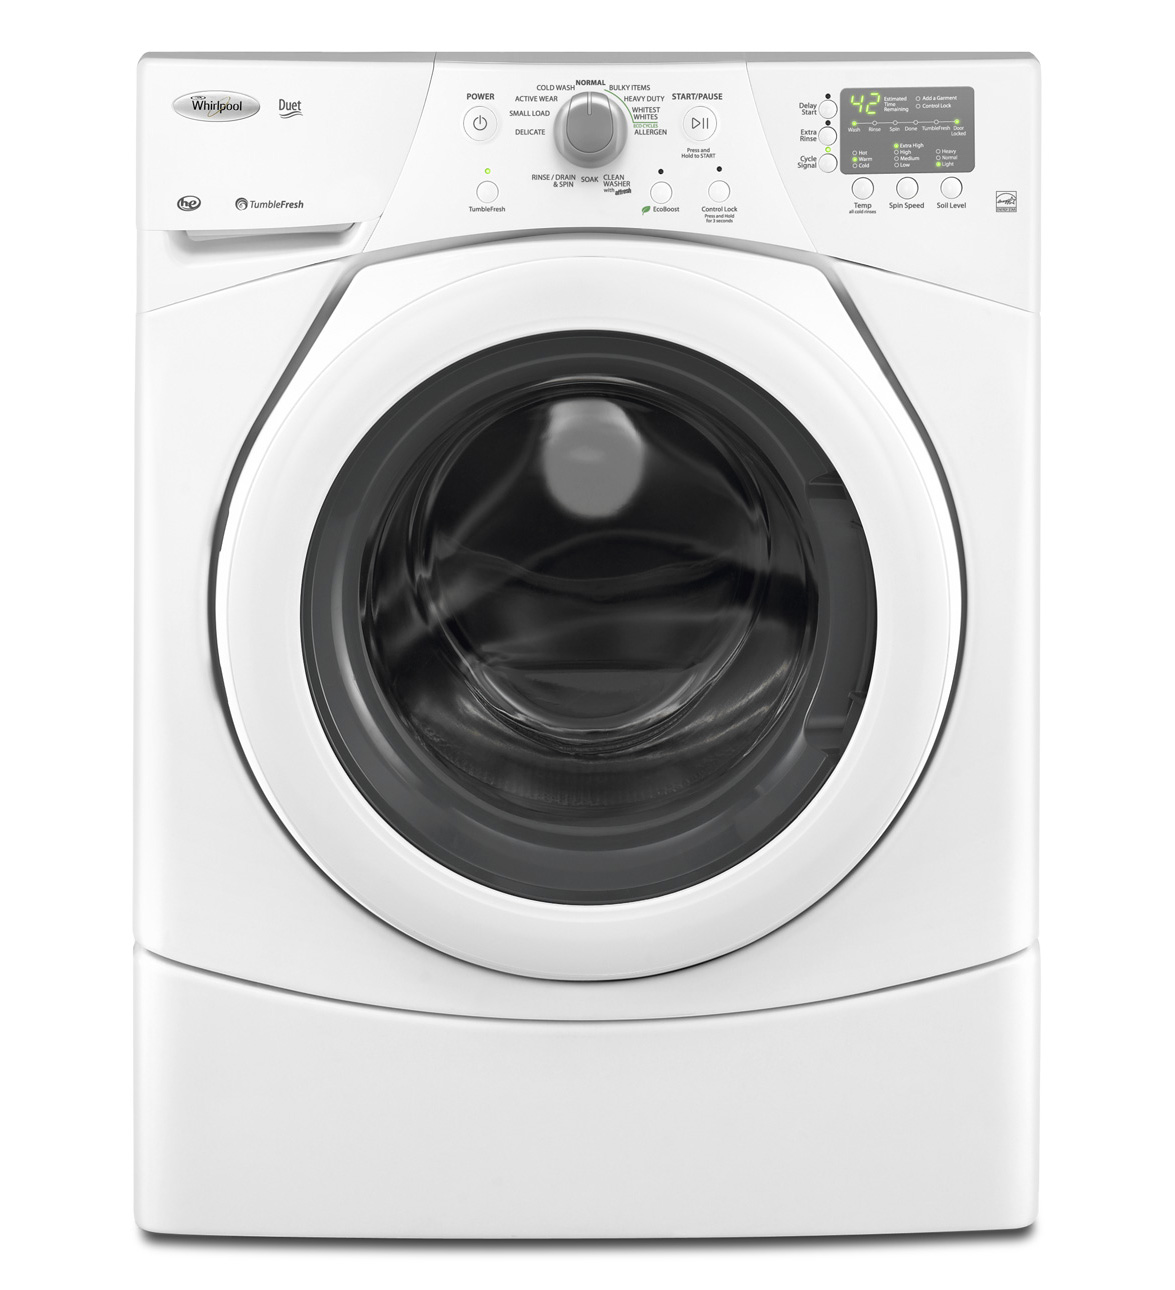 Whirlpool Duet 3.5 cu. ft. High-Efficiency Front Load Washer in White (Model: WFW9151YW)